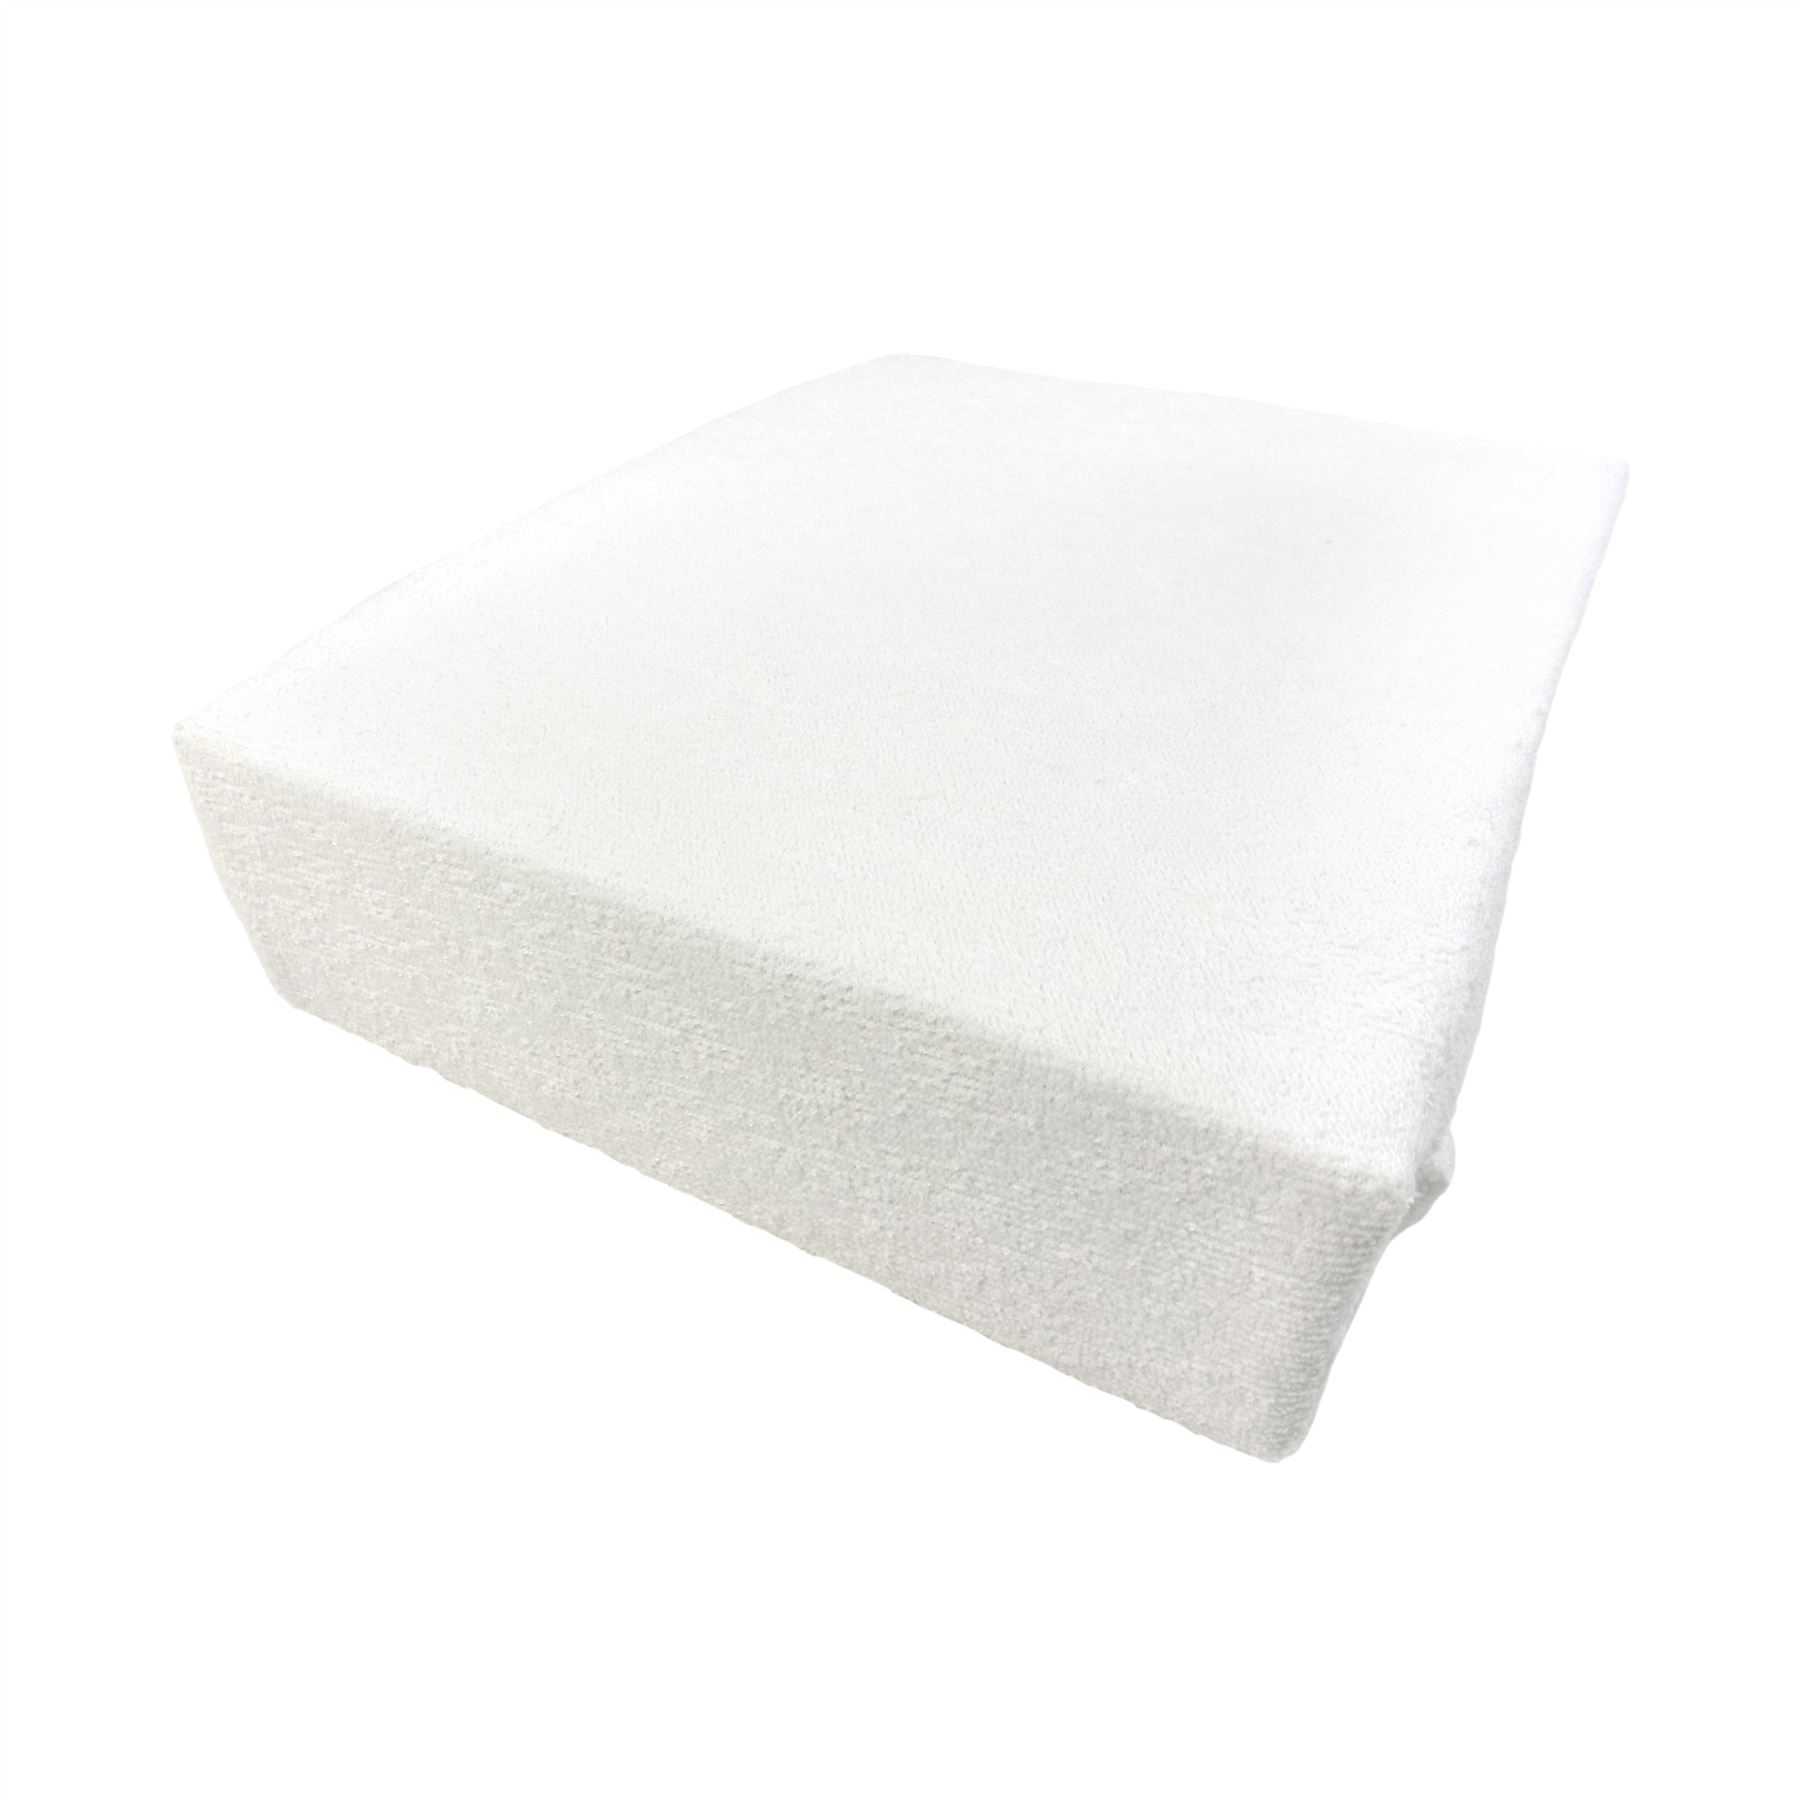 HOTEL QUALITY WATERPROOF TERRY TOWEL KING SIZE MATTRESS PROTECTOR 150X200CM